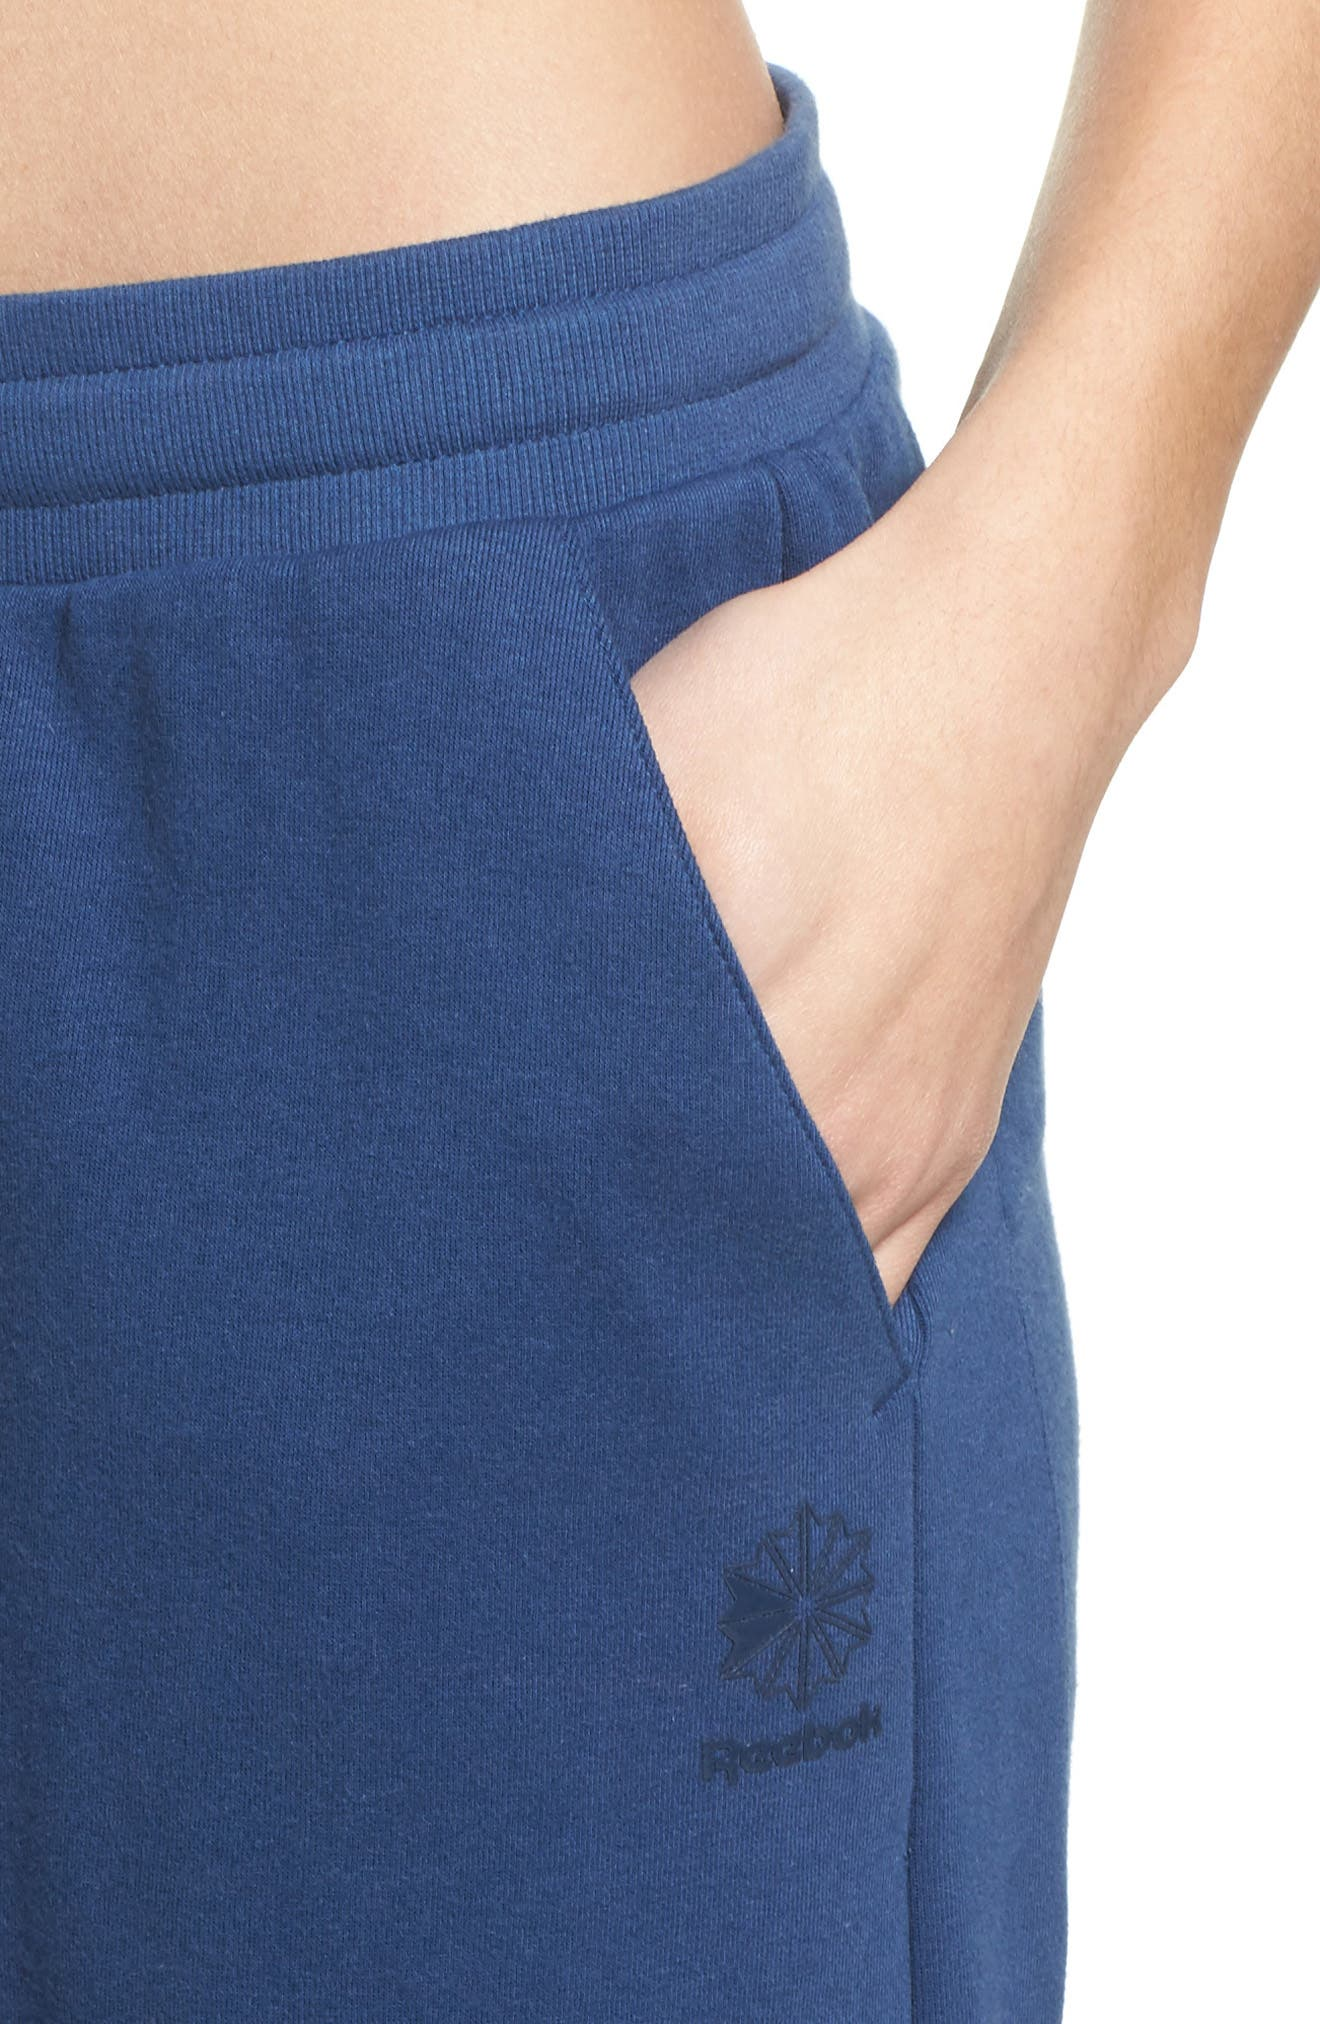 DC Jogger Pants,                             Alternate thumbnail 6, color,                             Washed Blue